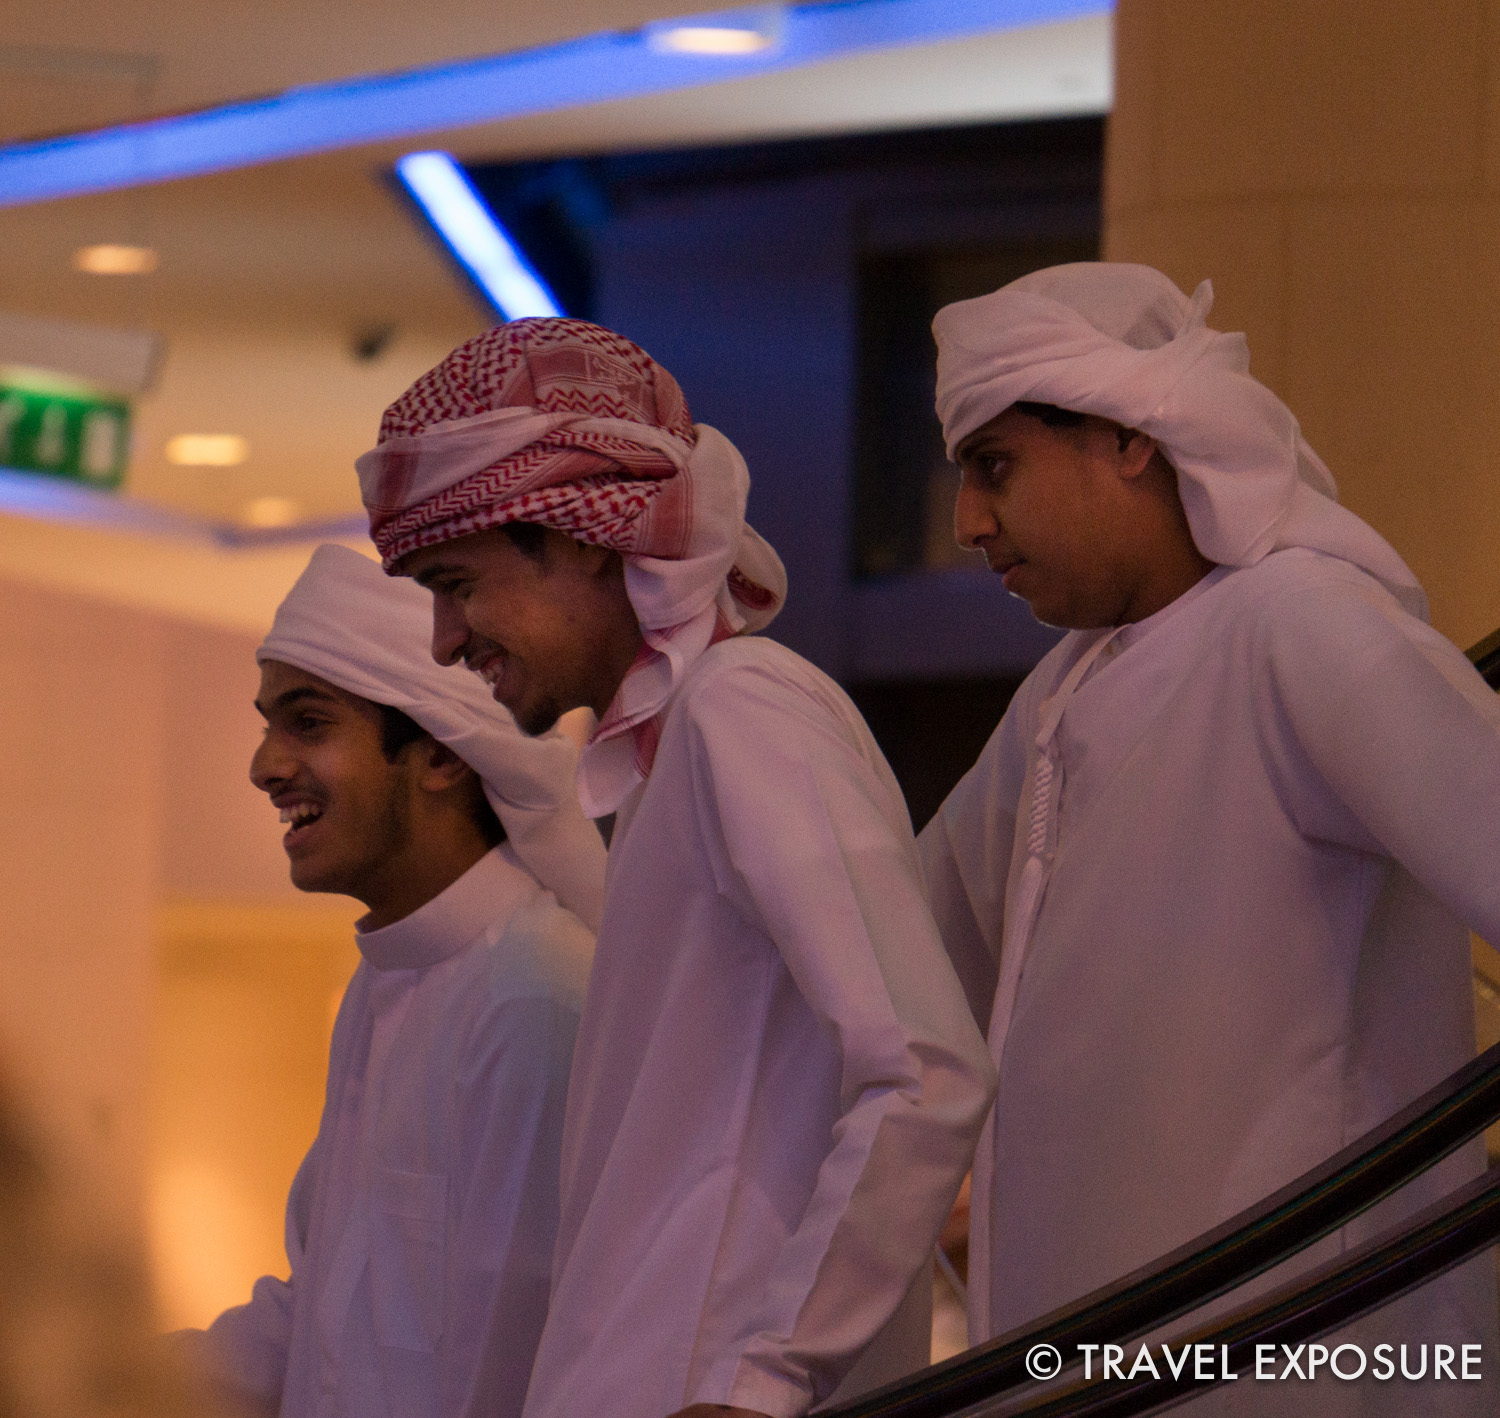 Locals at the Mall of the Emirates, Dubai.